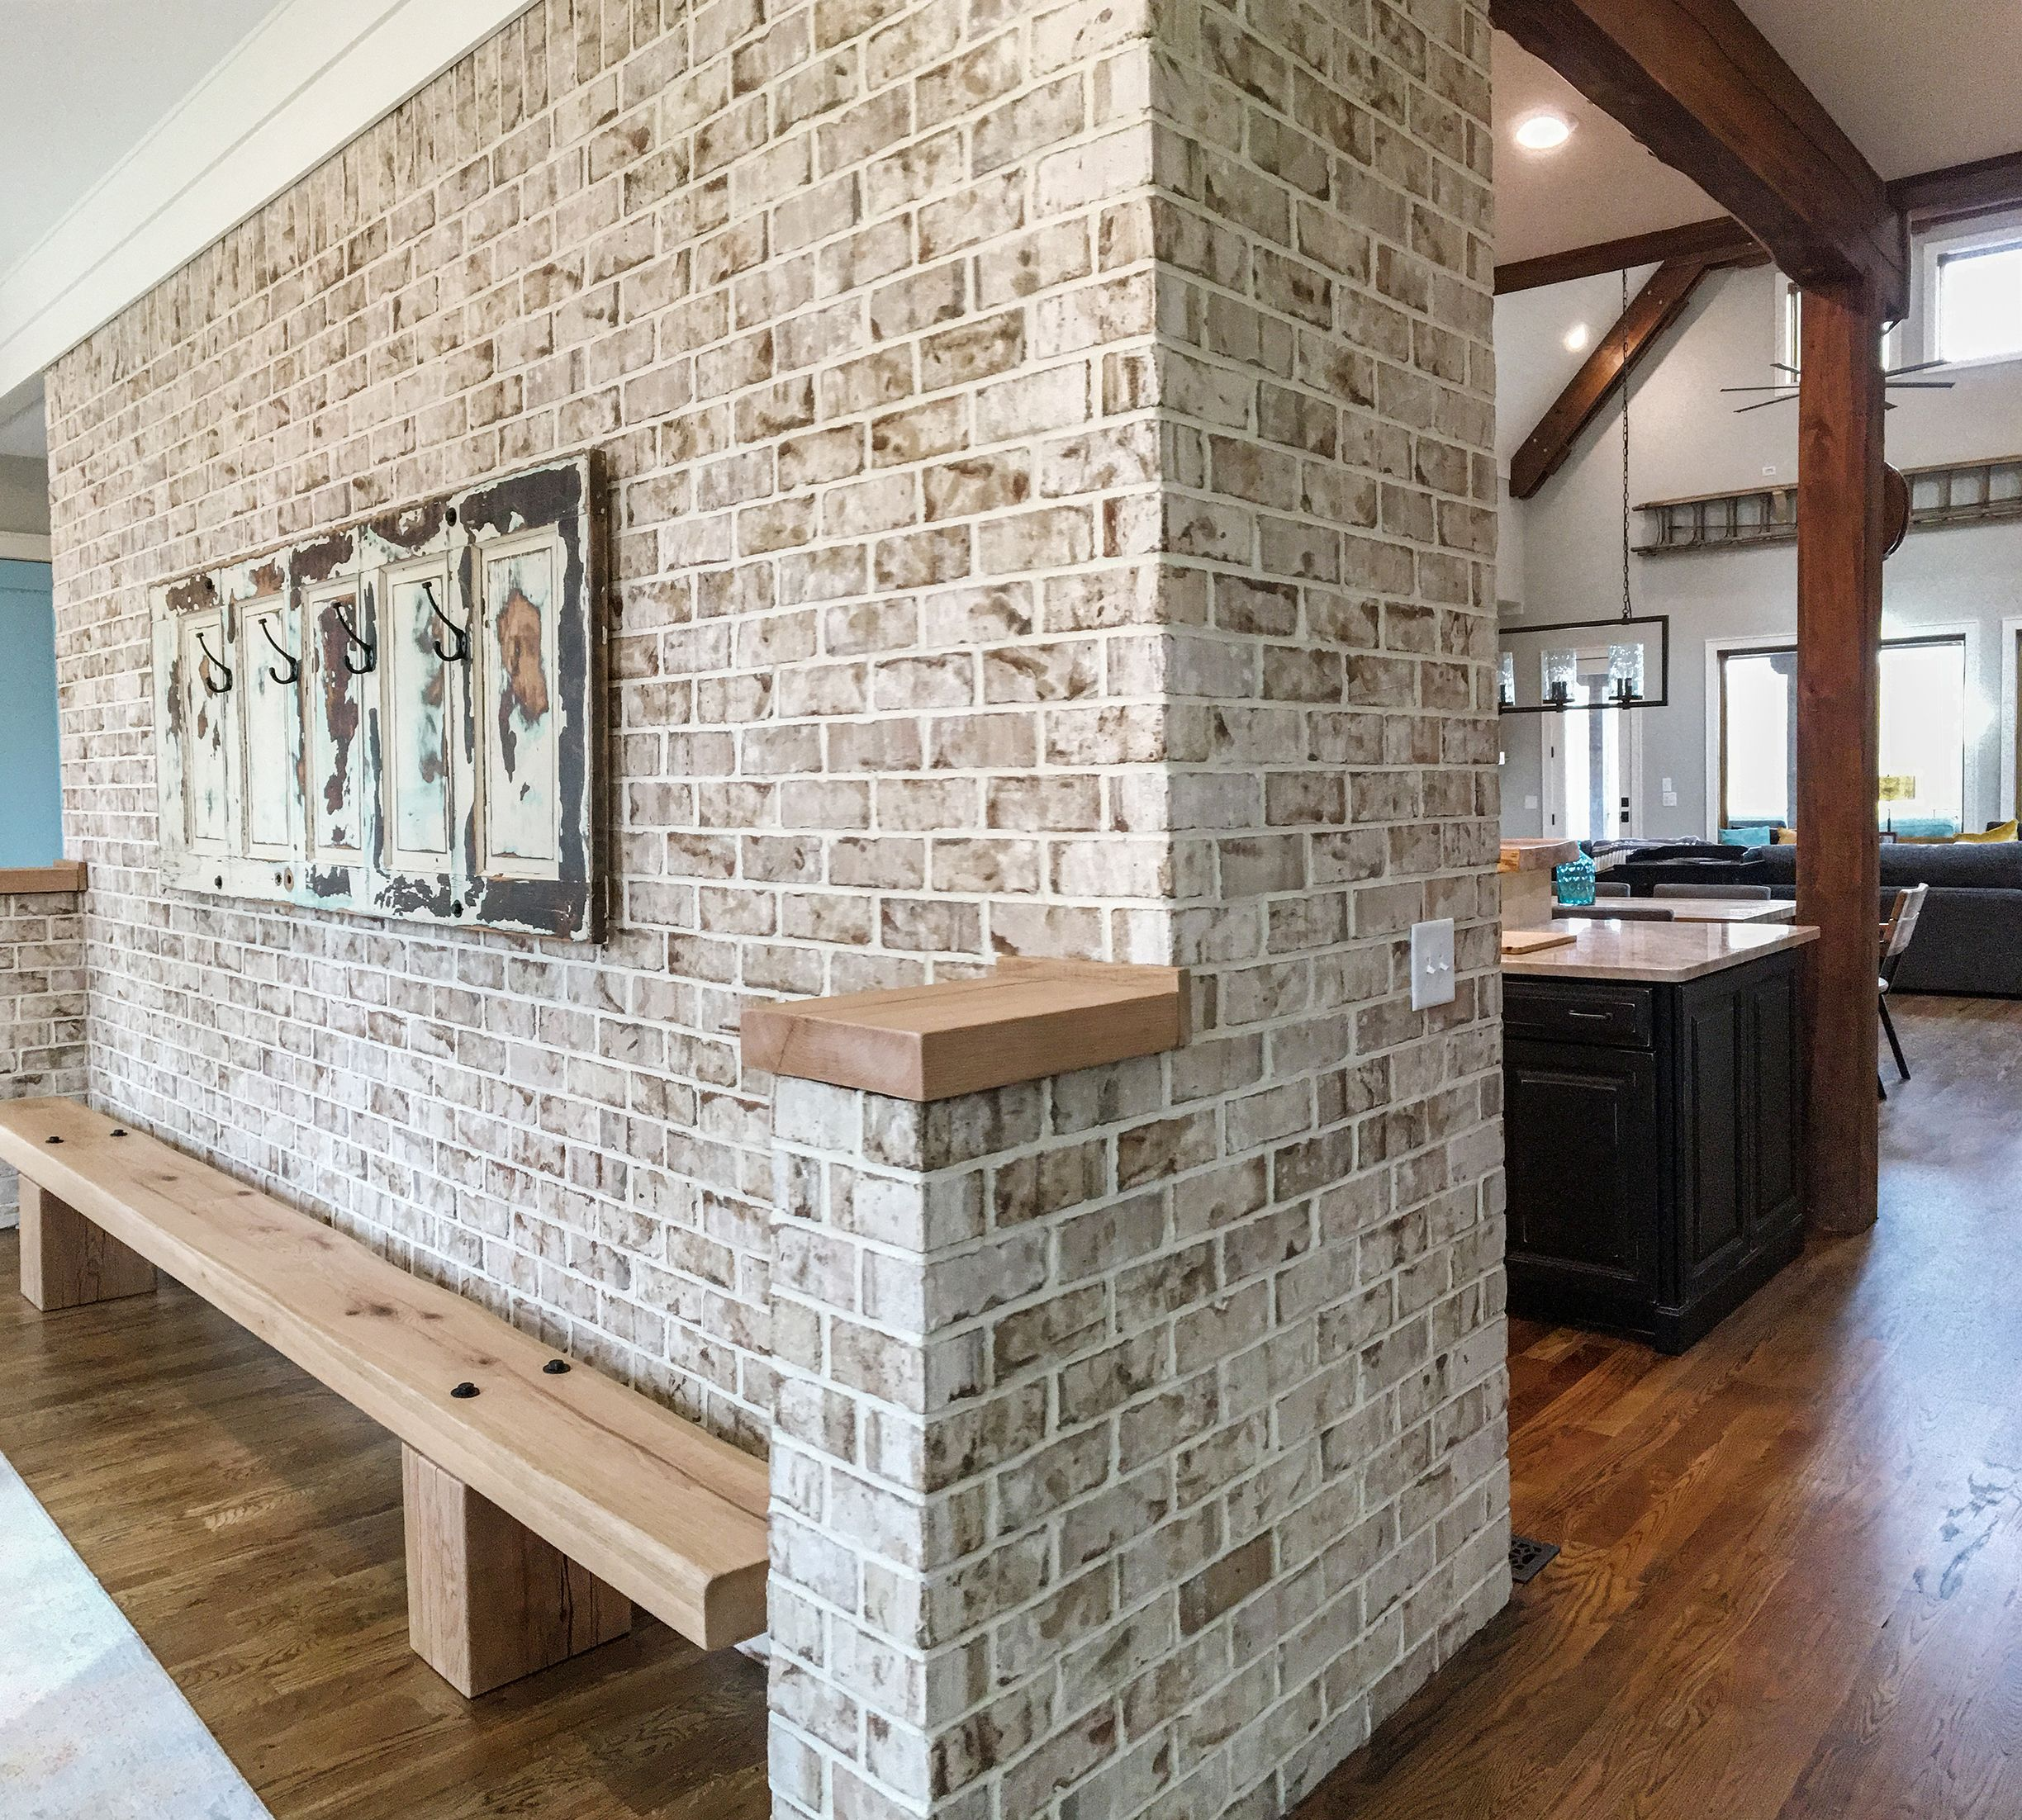 Interior Brick Walls Stylish Entrance To An Open Floor Plan With Brick Entrance